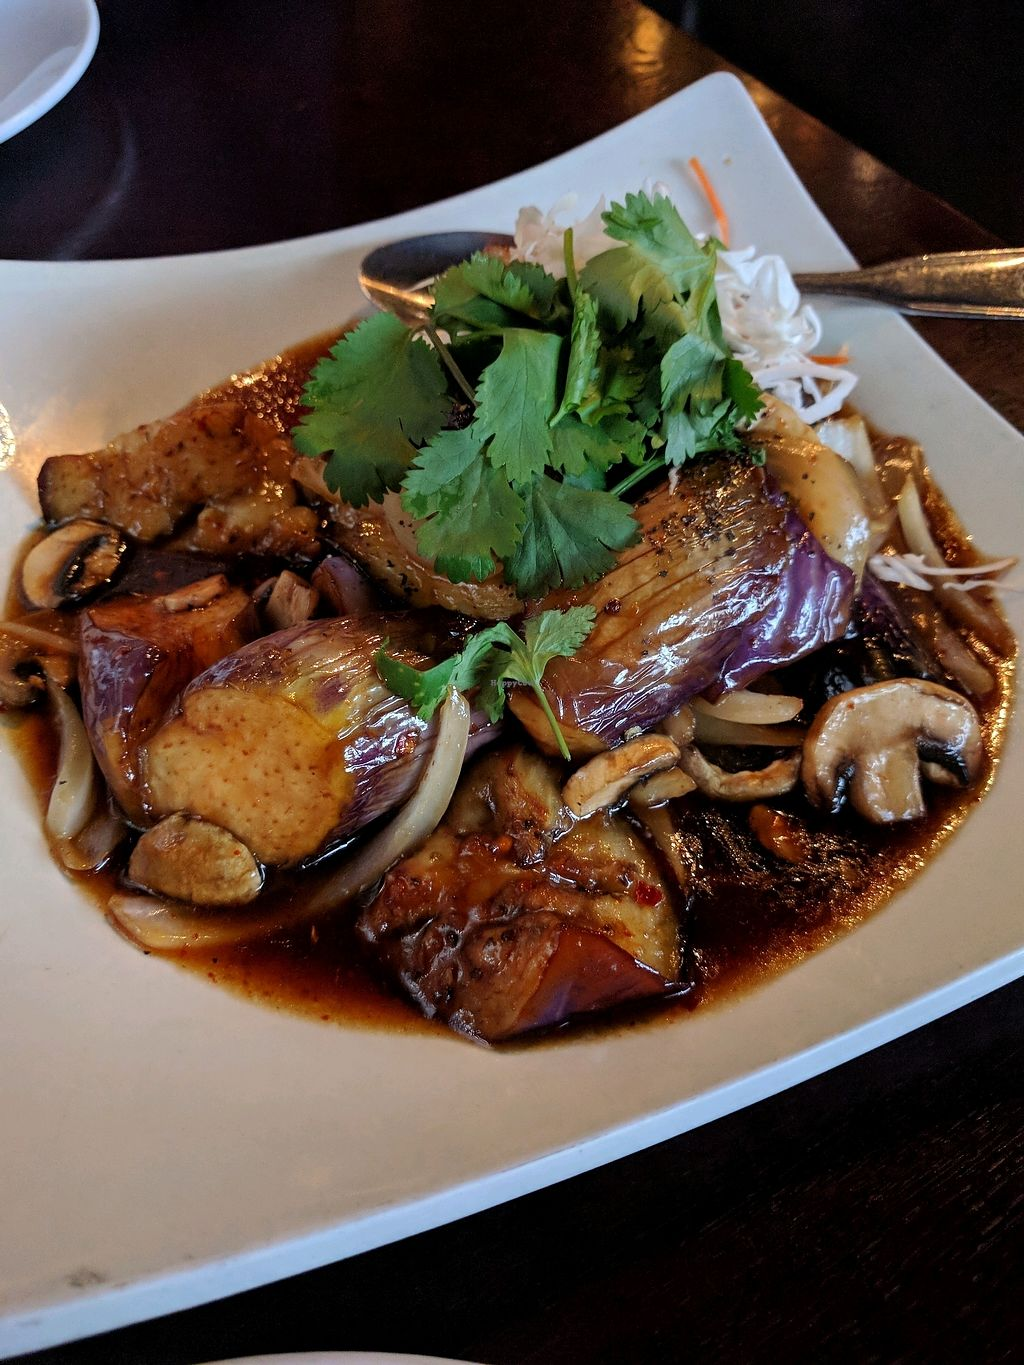 "Photo of Square Lotus  by <a href=""/members/profile/Chickadee"">Chickadee</a> <br/>veg eggplant and mushrooms in special sauce <br/> December 6, 2017  - <a href='/contact/abuse/image/8238/332814'>Report</a>"